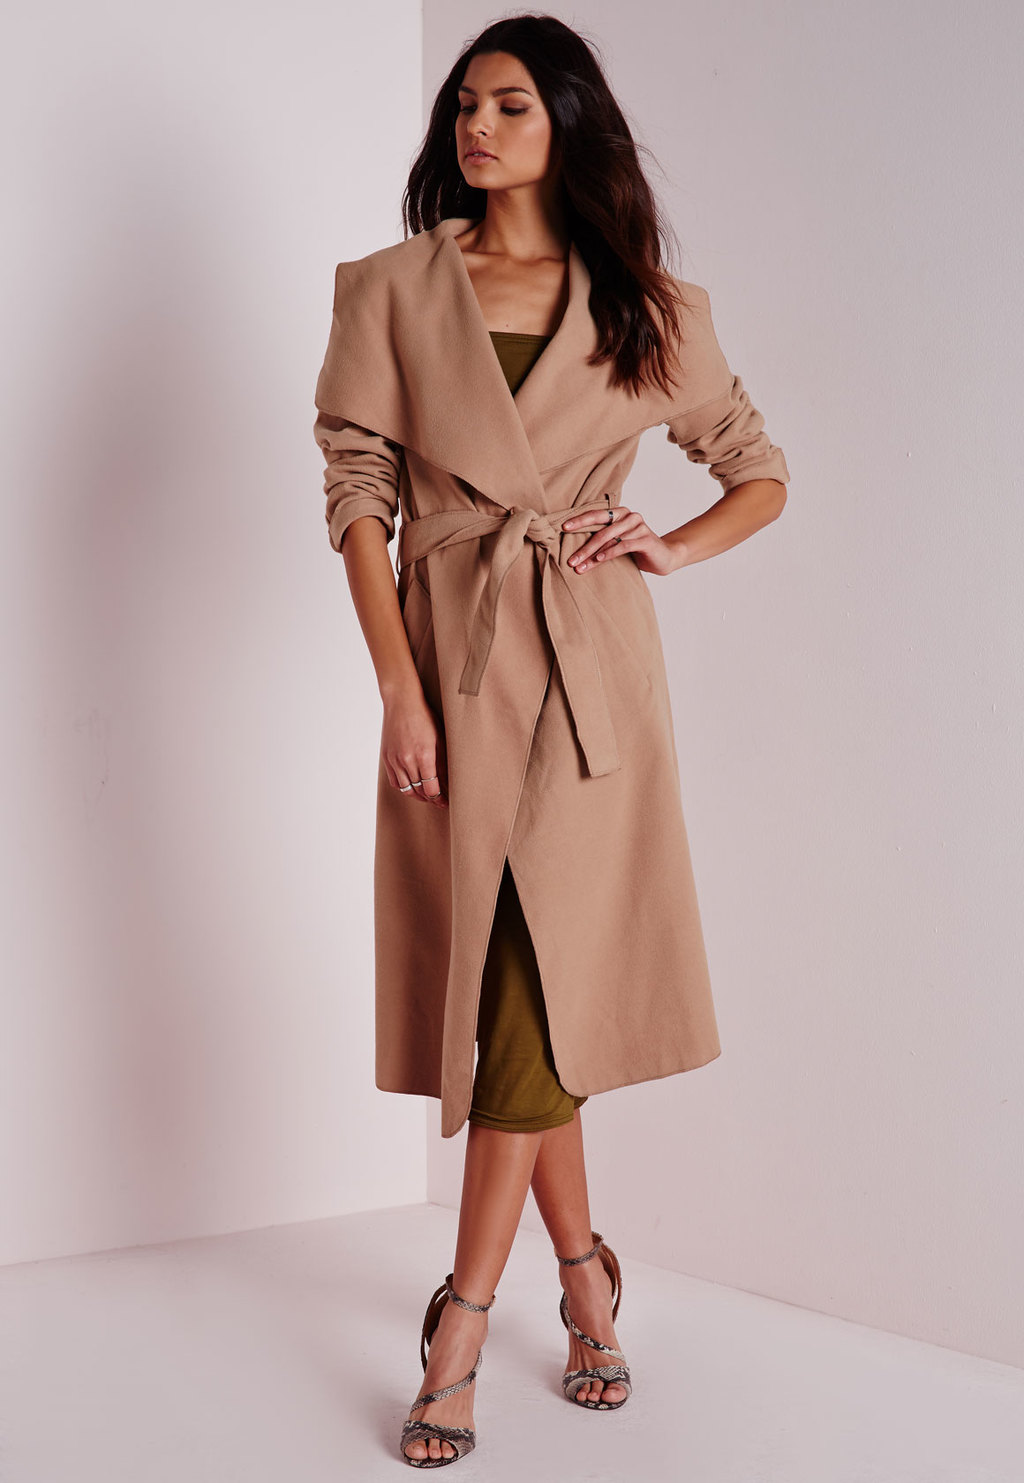 Petite Belted Waterfall Coat Camel, Beige - pattern: plain; collar: shawl/waterfall; style: wrap around; predominant colour: camel; occasions: work; fit: tailored/fitted; fibres: polyester/polyamide - mix; length: below the knee; hip detail: subtle/flattering hip detail; waist detail: belted waist/tie at waist/drawstring; sleeve length: long sleeve; sleeve style: standard; collar break: medium; pattern type: fabric; texture group: woven bulky/heavy; season: a/w 2015; wardrobe: investment